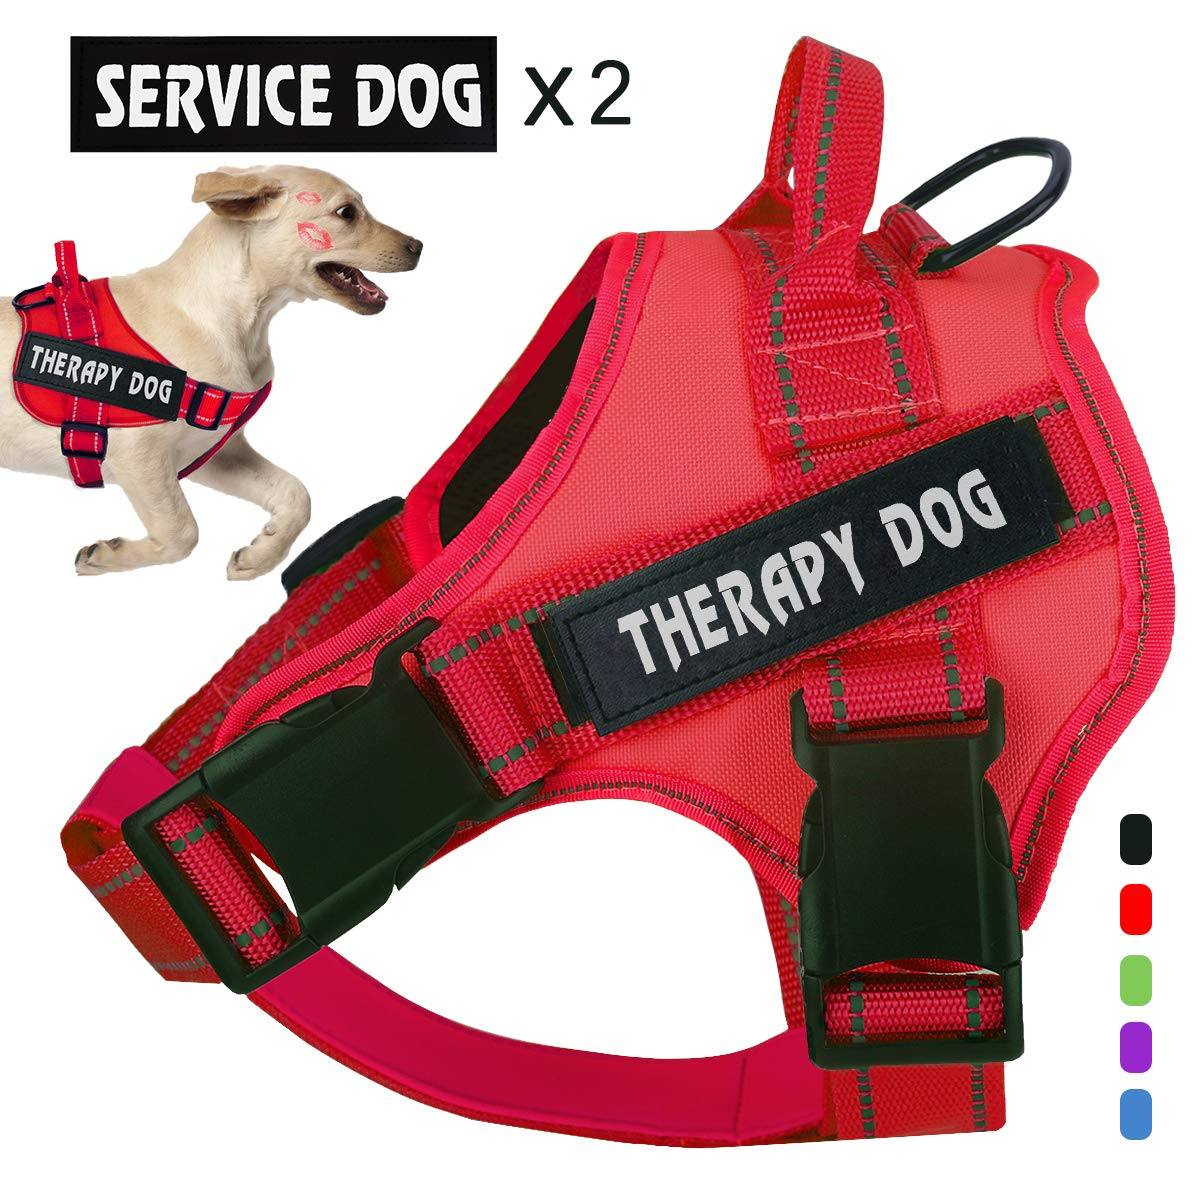 voopet No Pull Service Dog Harness,Therapy Dog Vest Harness with Reflective Straps,Lightweight Breathable and Adjustable Pet Halters,Easy On and Off Pet Vest Harness for Small Medium Large Dogs